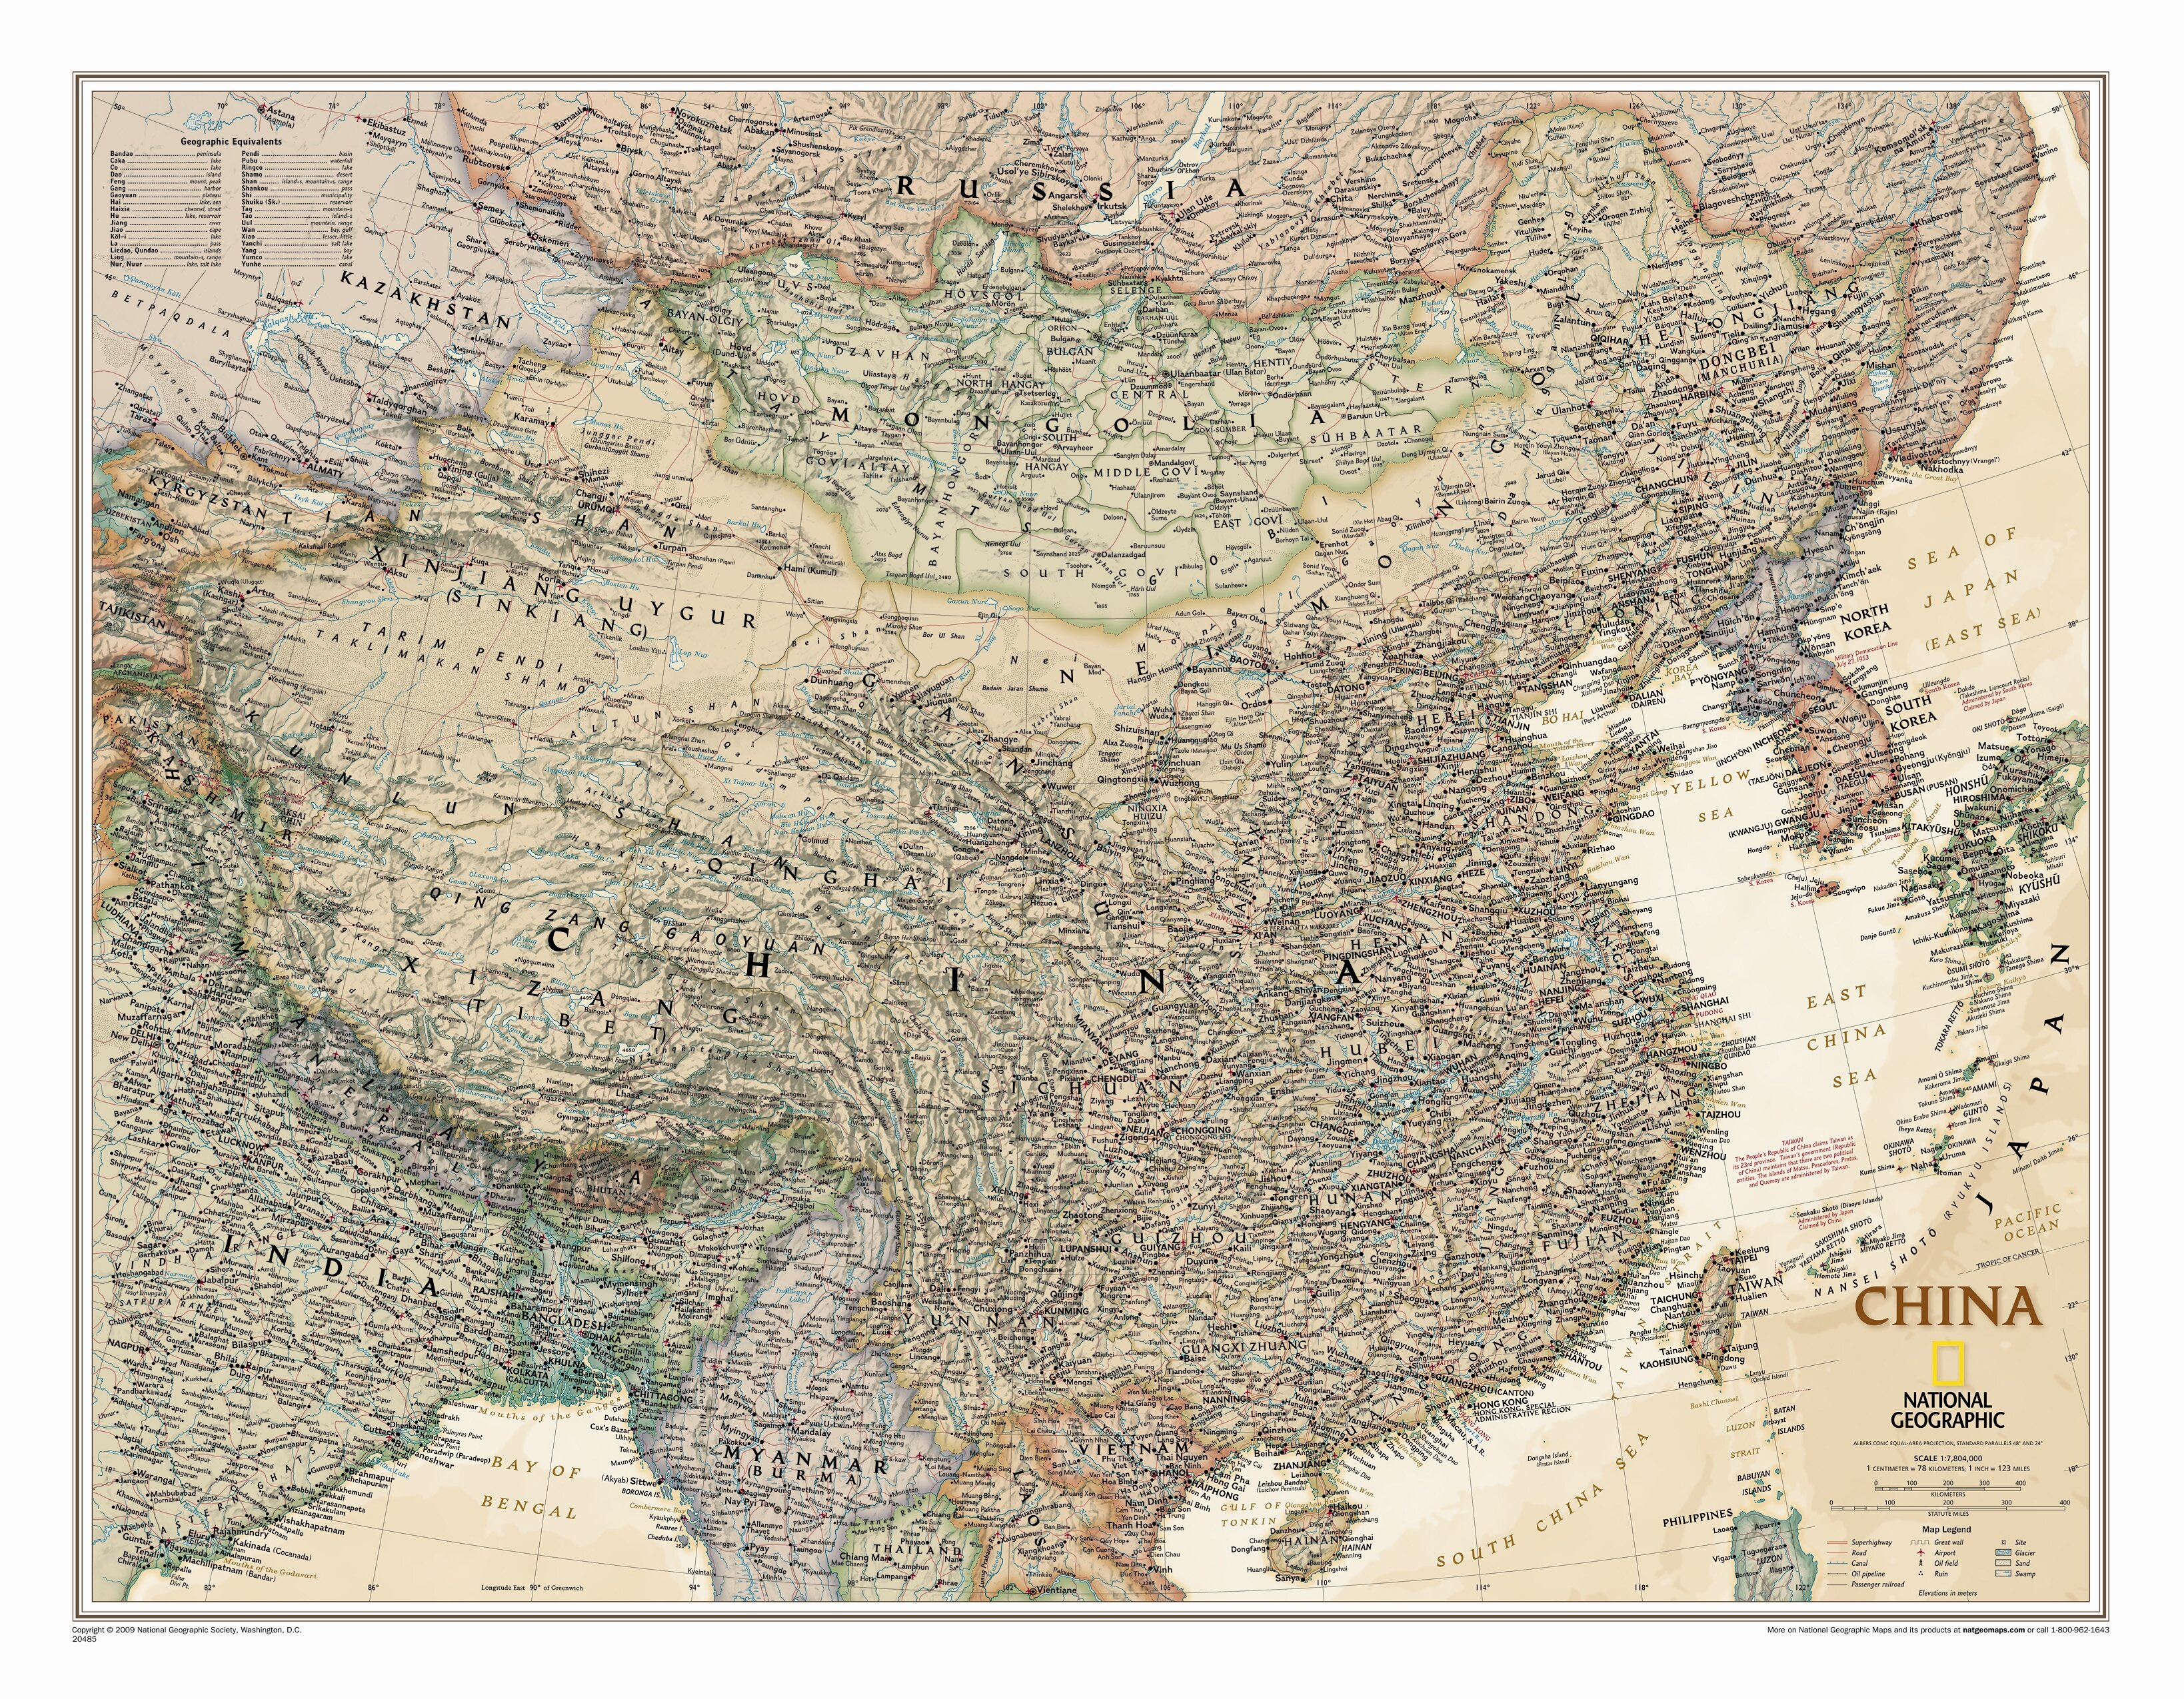 China Executive Wall Map on map in nicaragua, map in maryland, map in canada, map in singapore, map in denmark, map in 1700, map in java, map in india, map in cambodia, map in cancun, map in mongolia, map in mexico, map in usa, map in europe, map in china, map in sudan, map in pakistan, map in burma, map in nz, map in california,